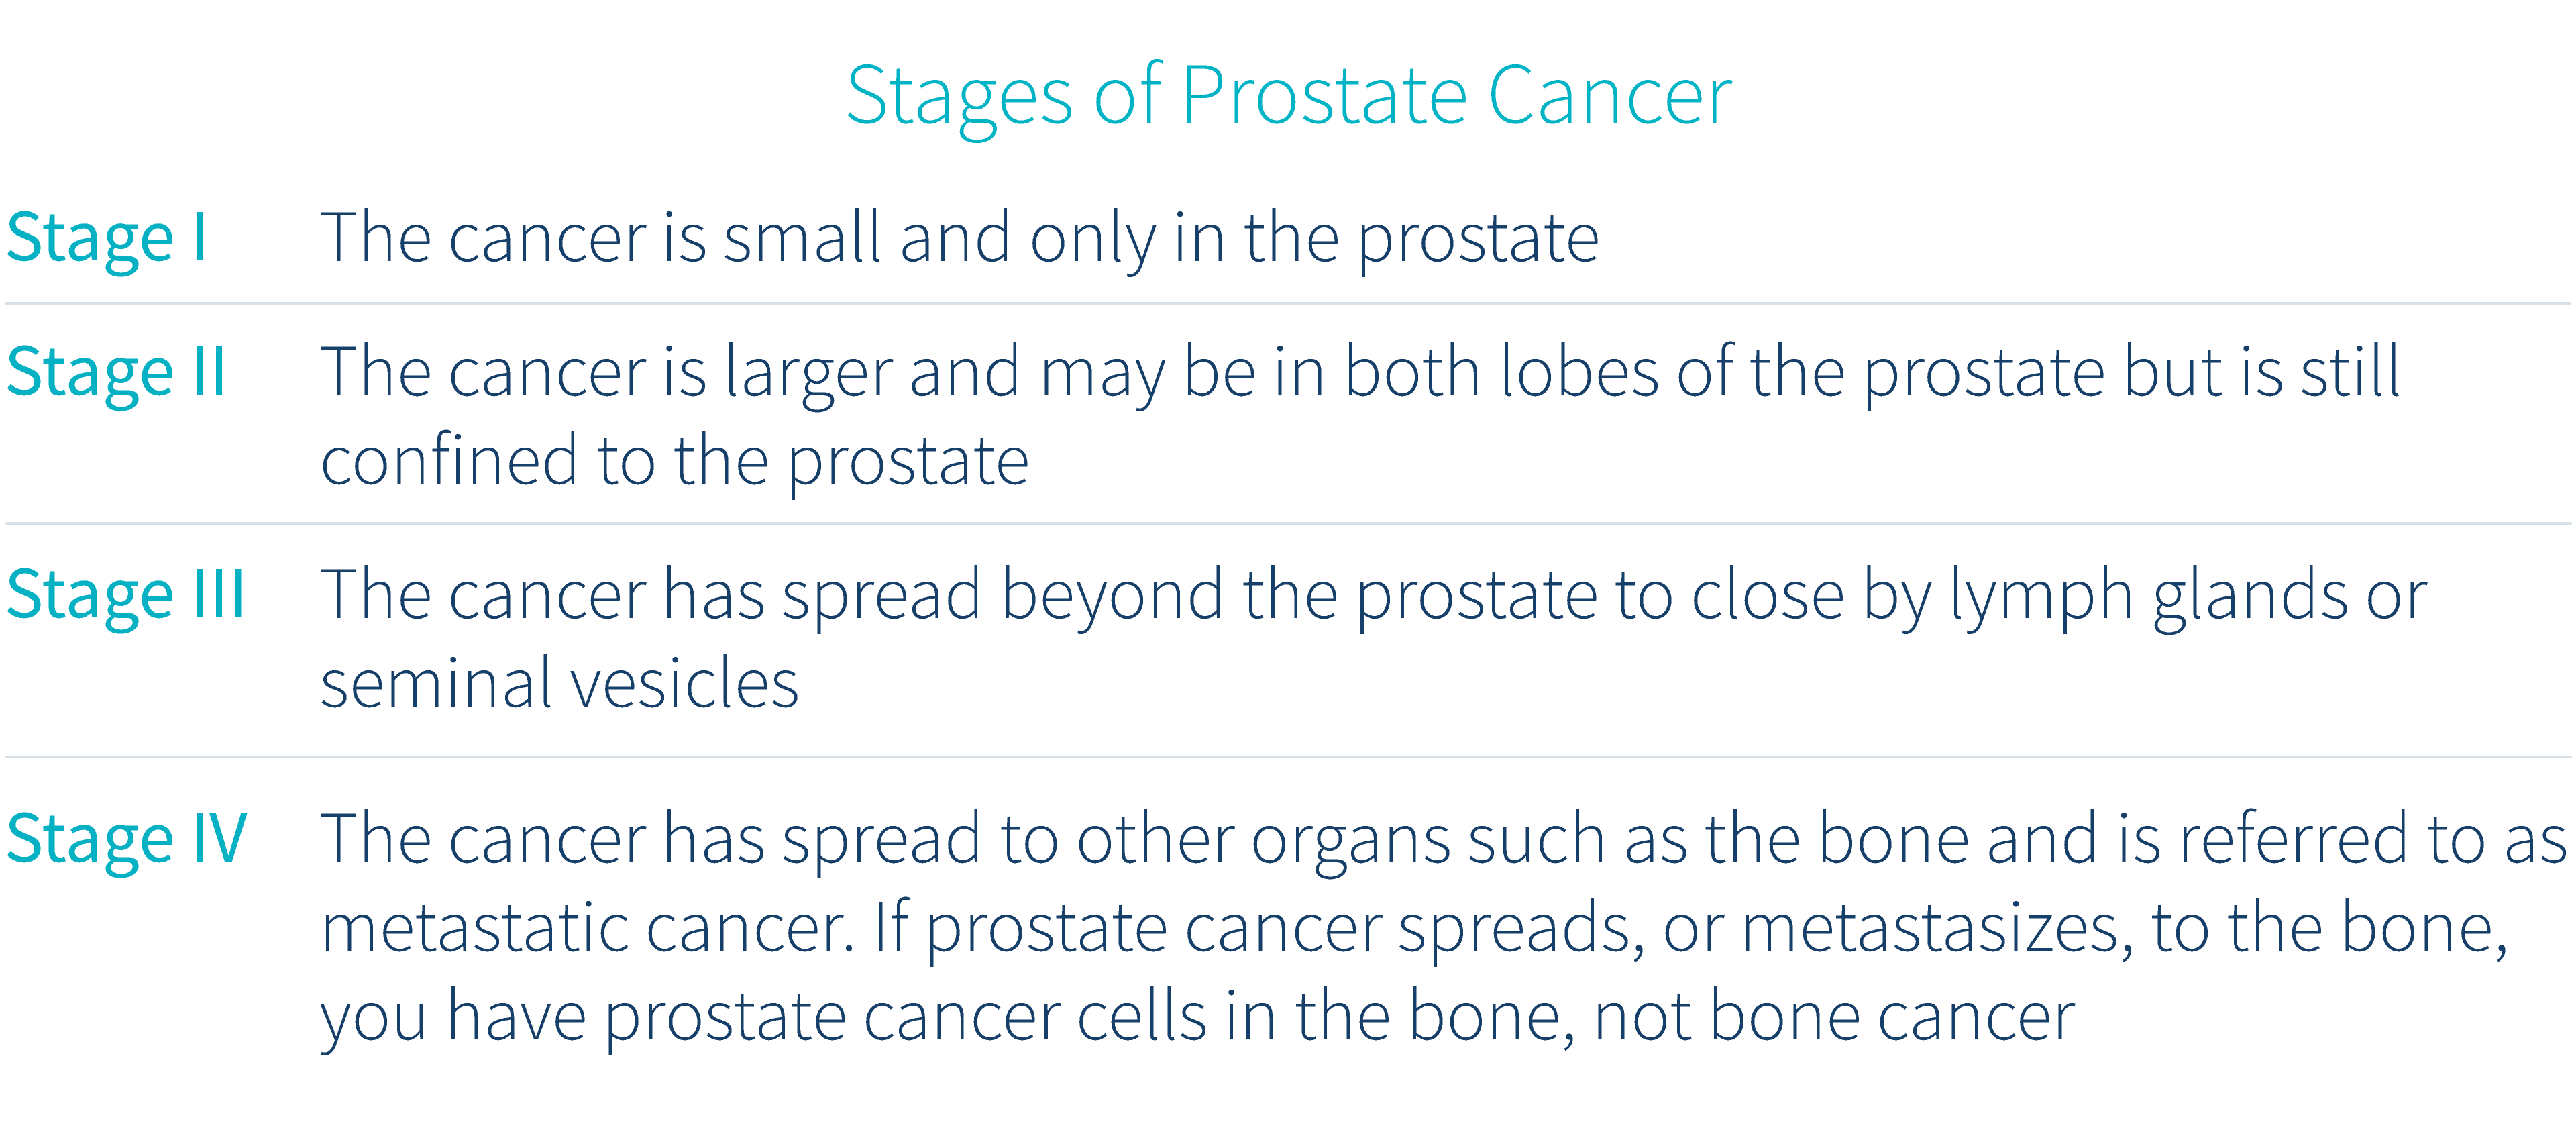 symptoms-of-prostate-cancer-stages-of-prostate-cancer-table